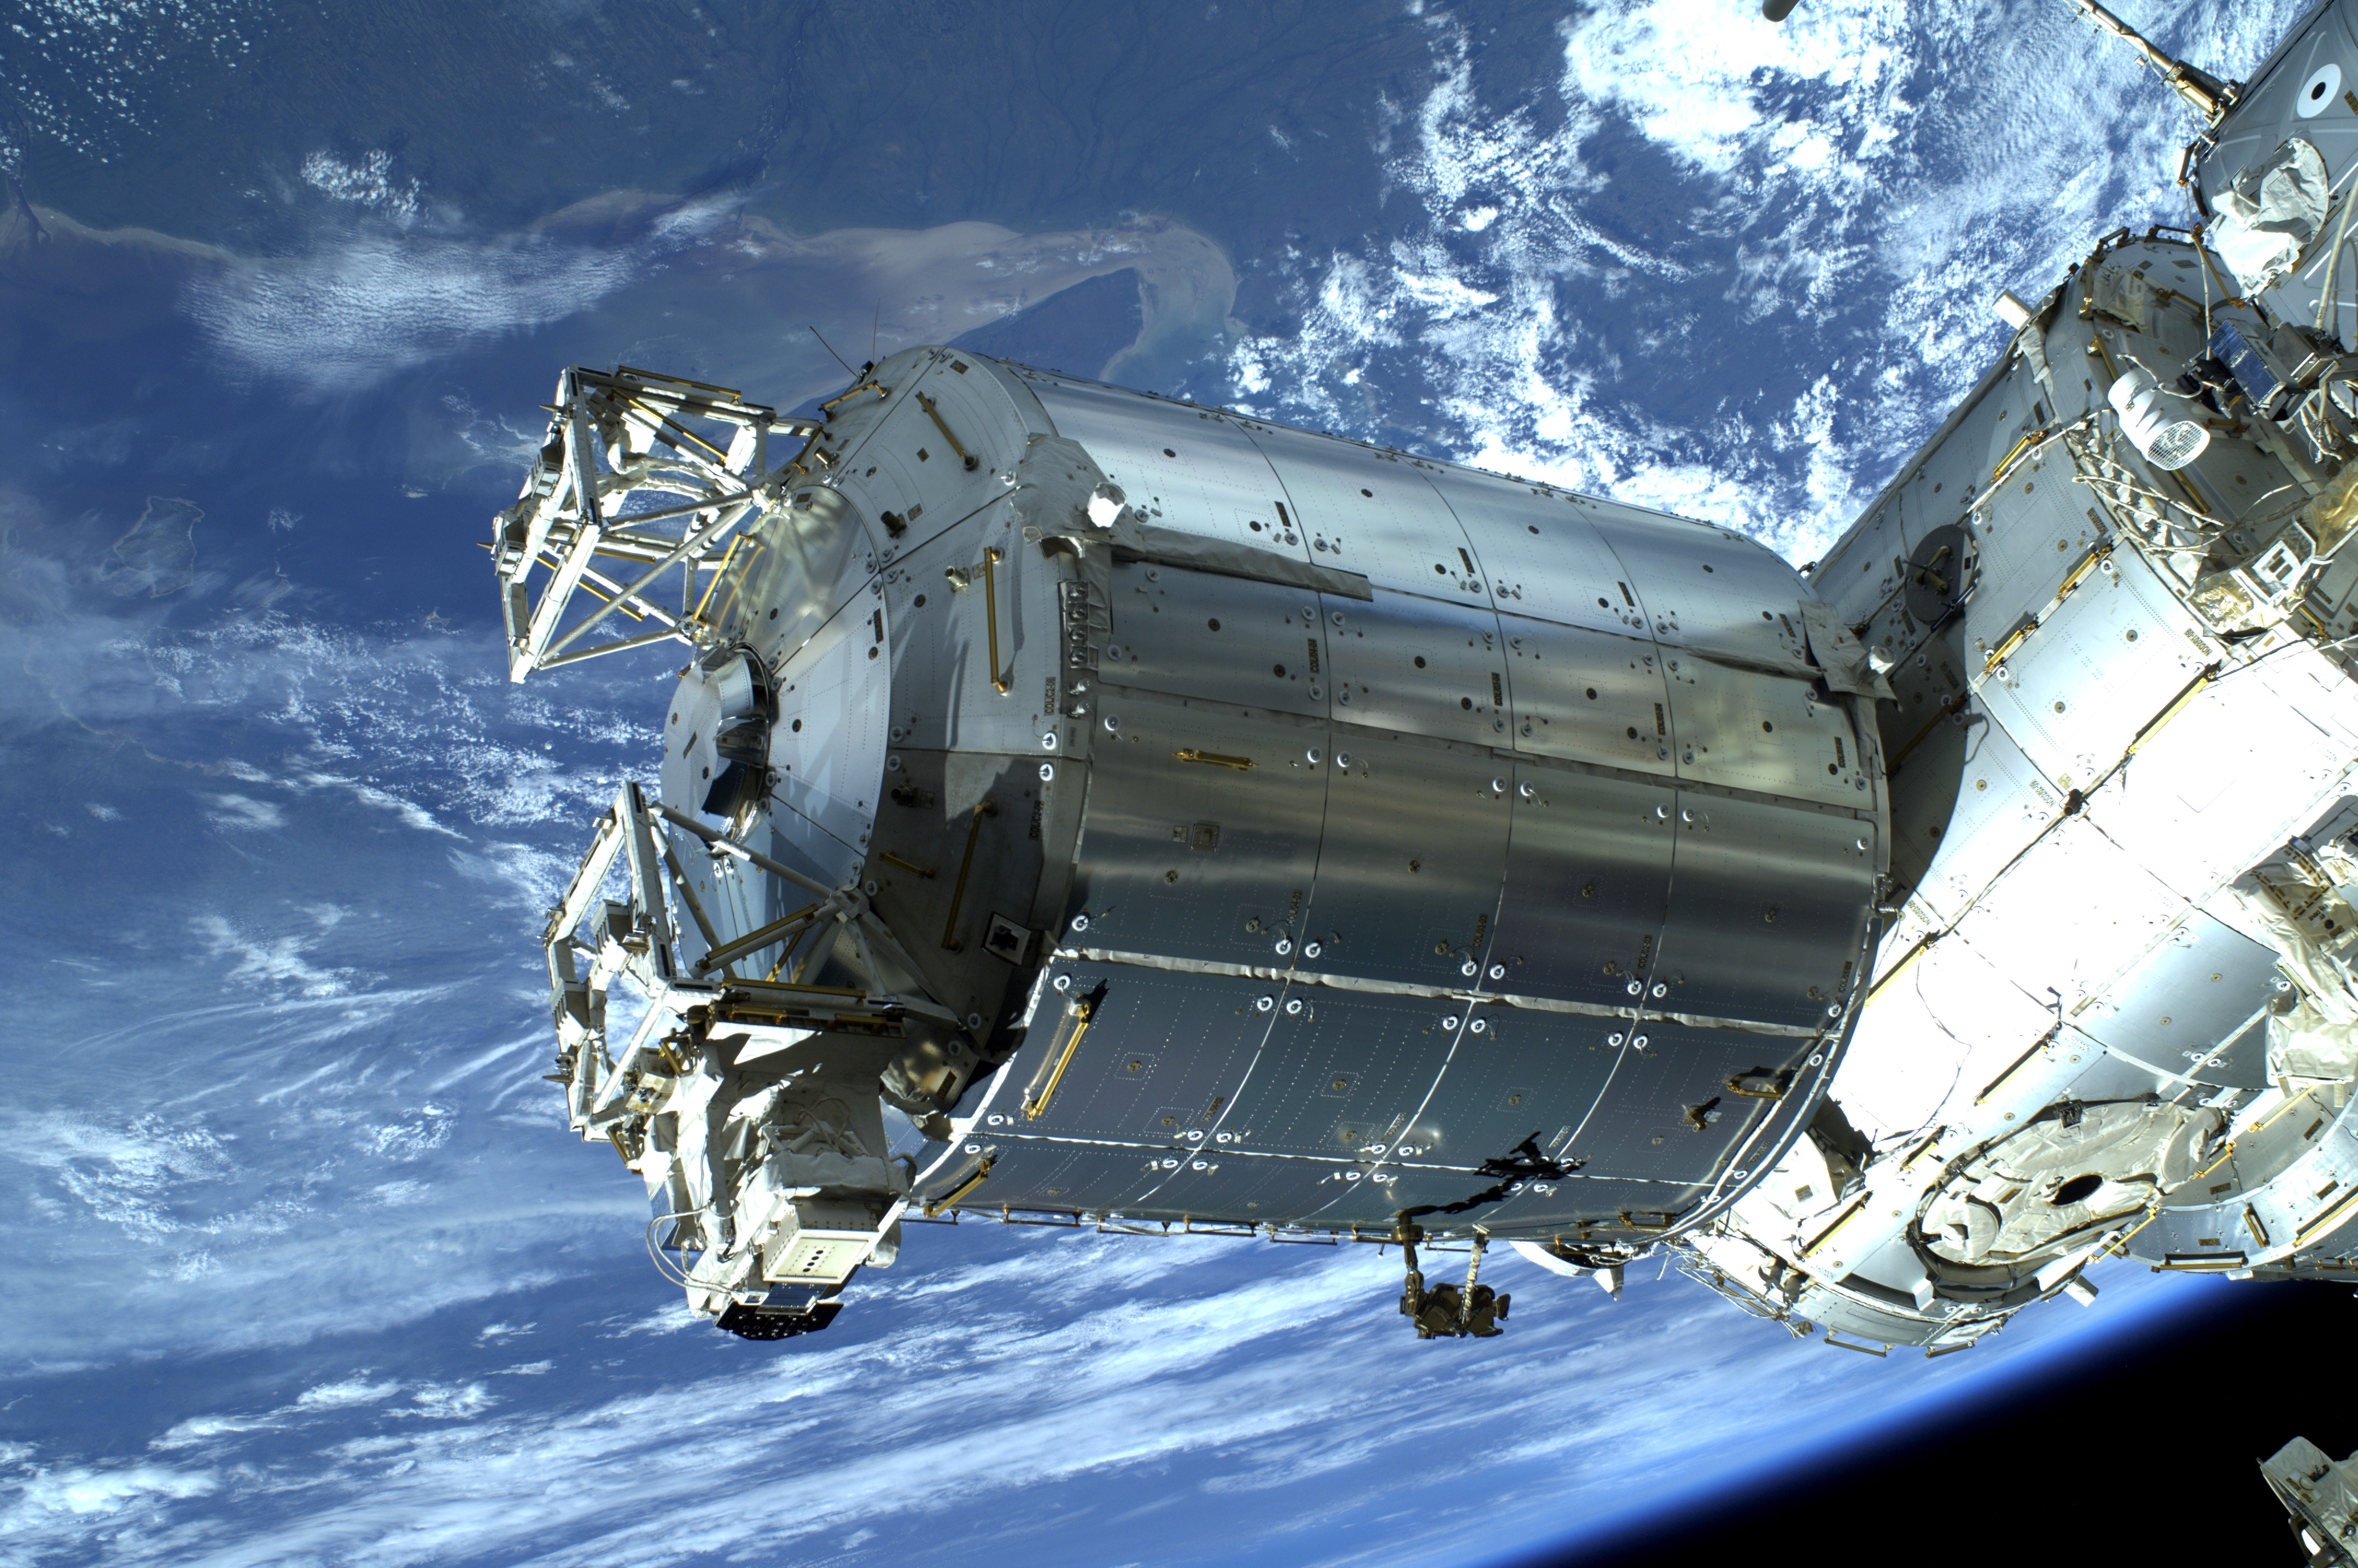 ISS Columbia